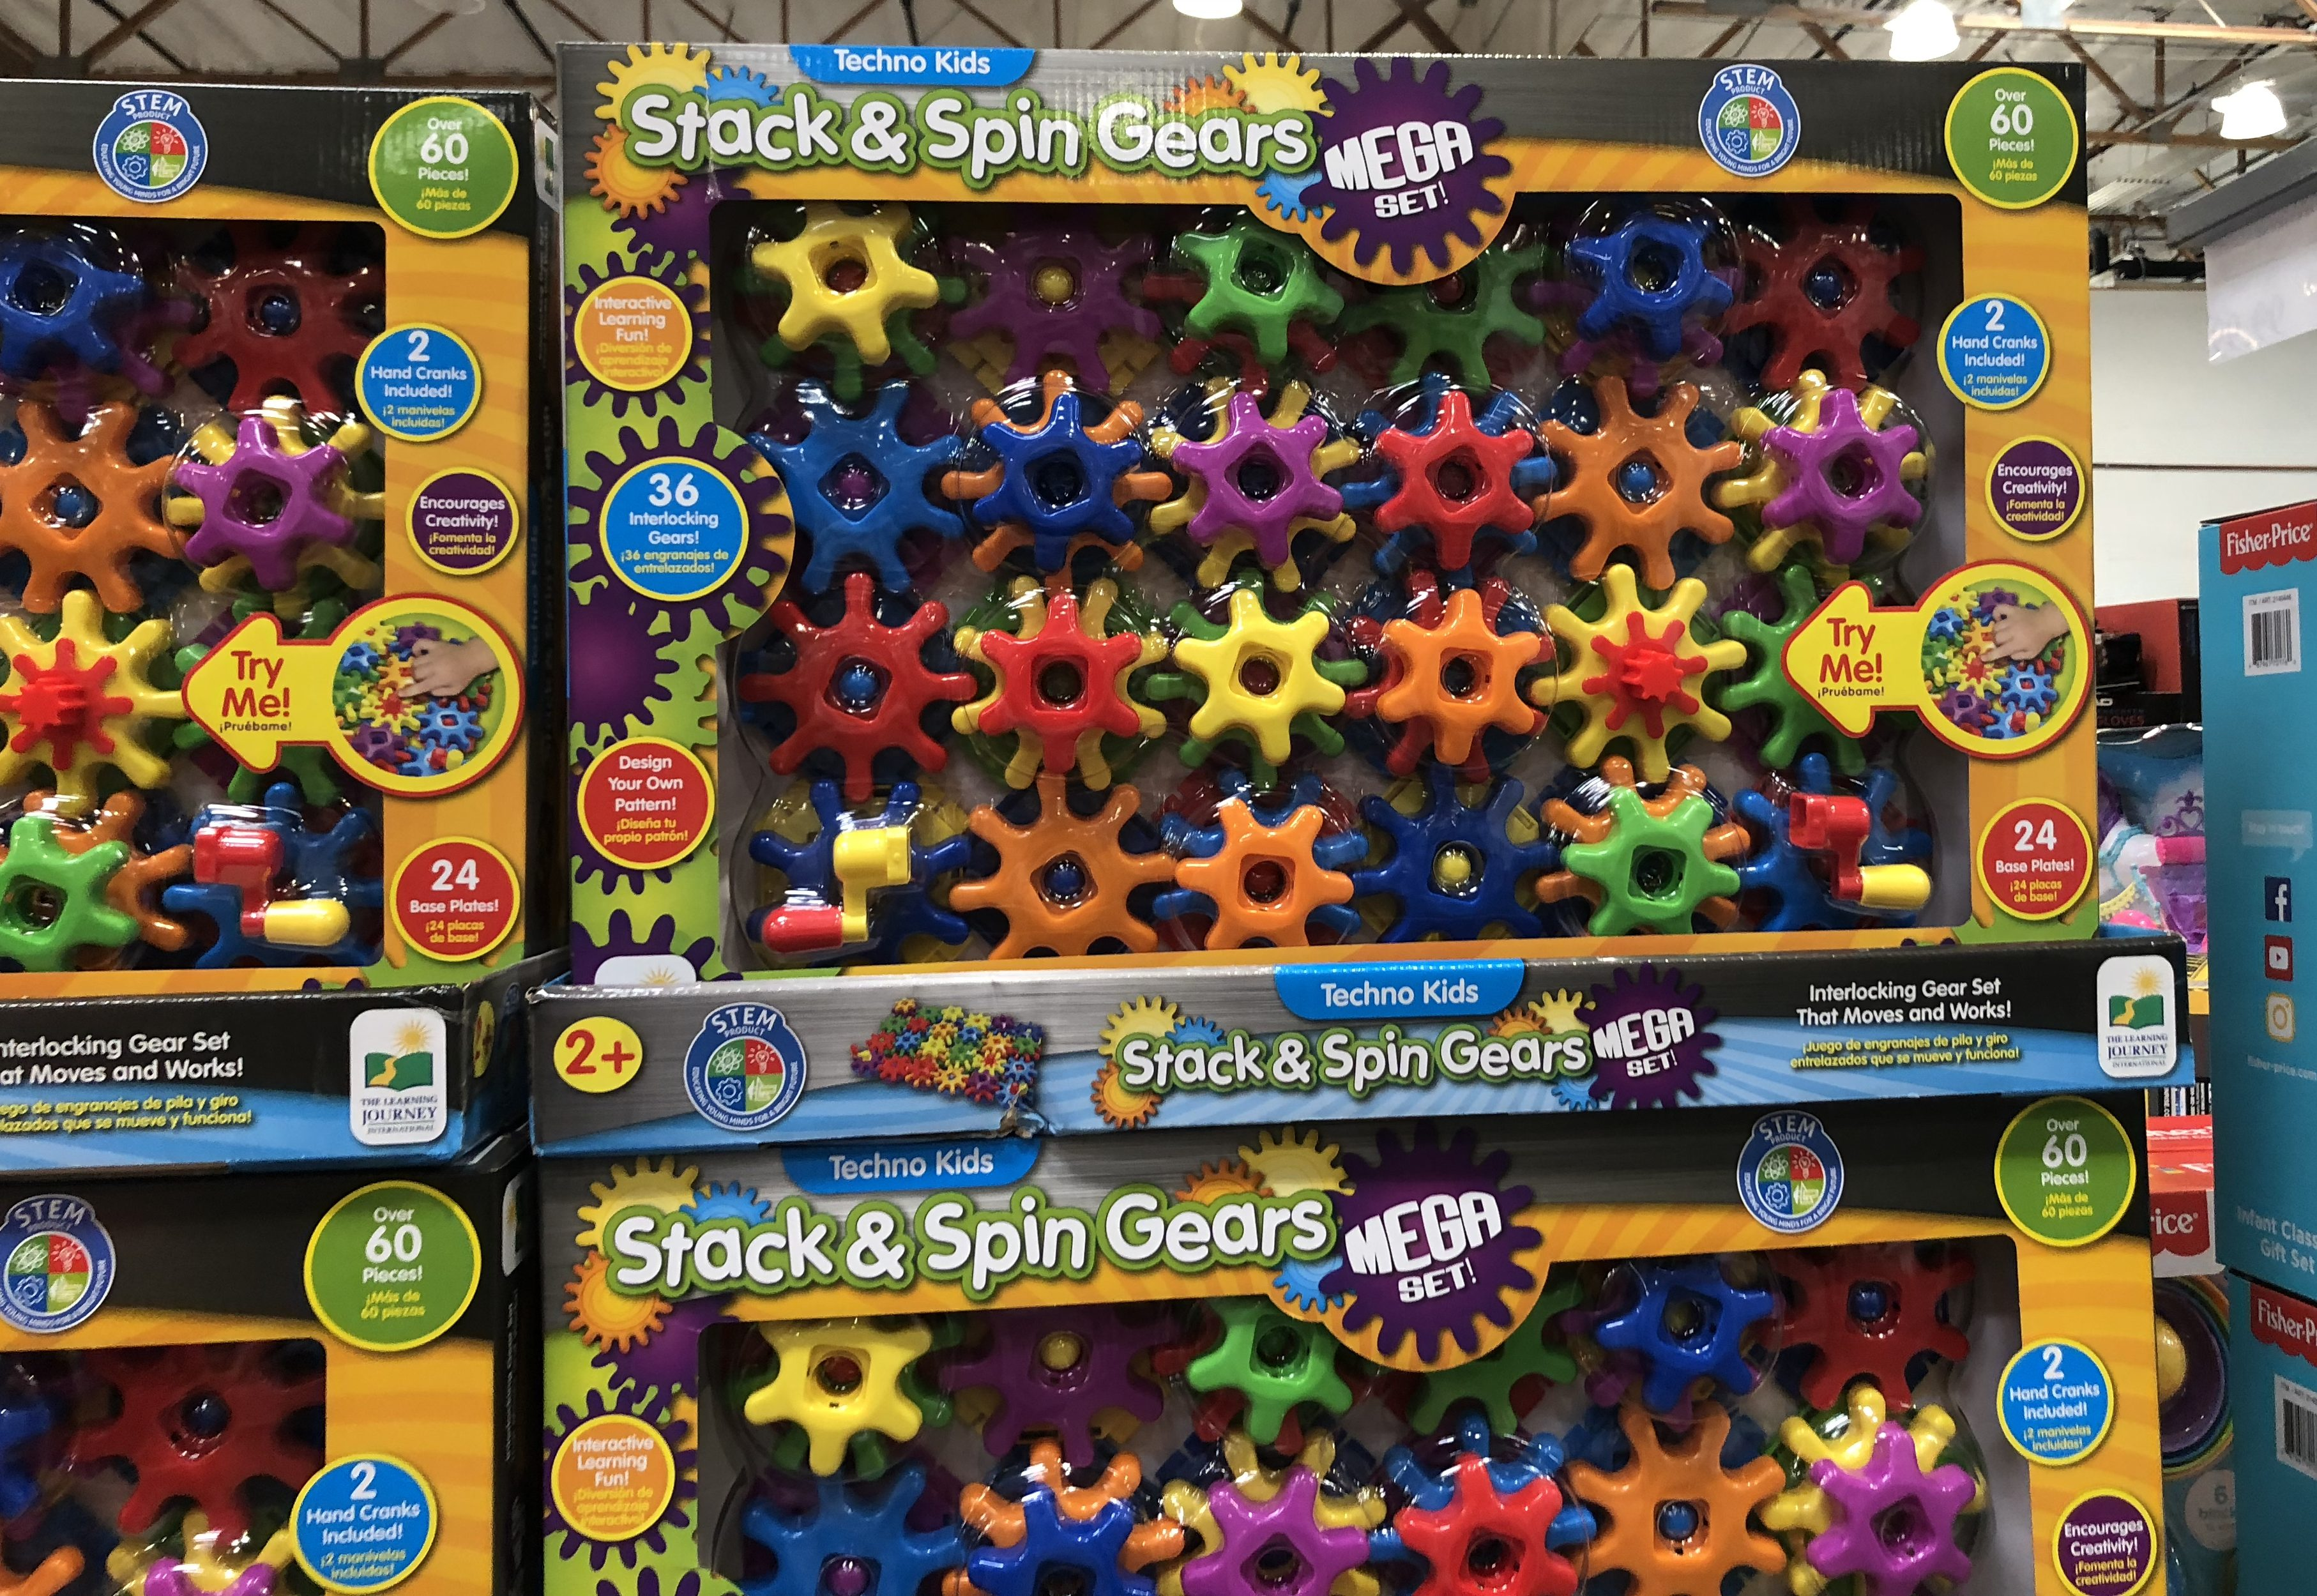 The best holiday toy deals for 2018 include Stack & Spin Gears at Costco